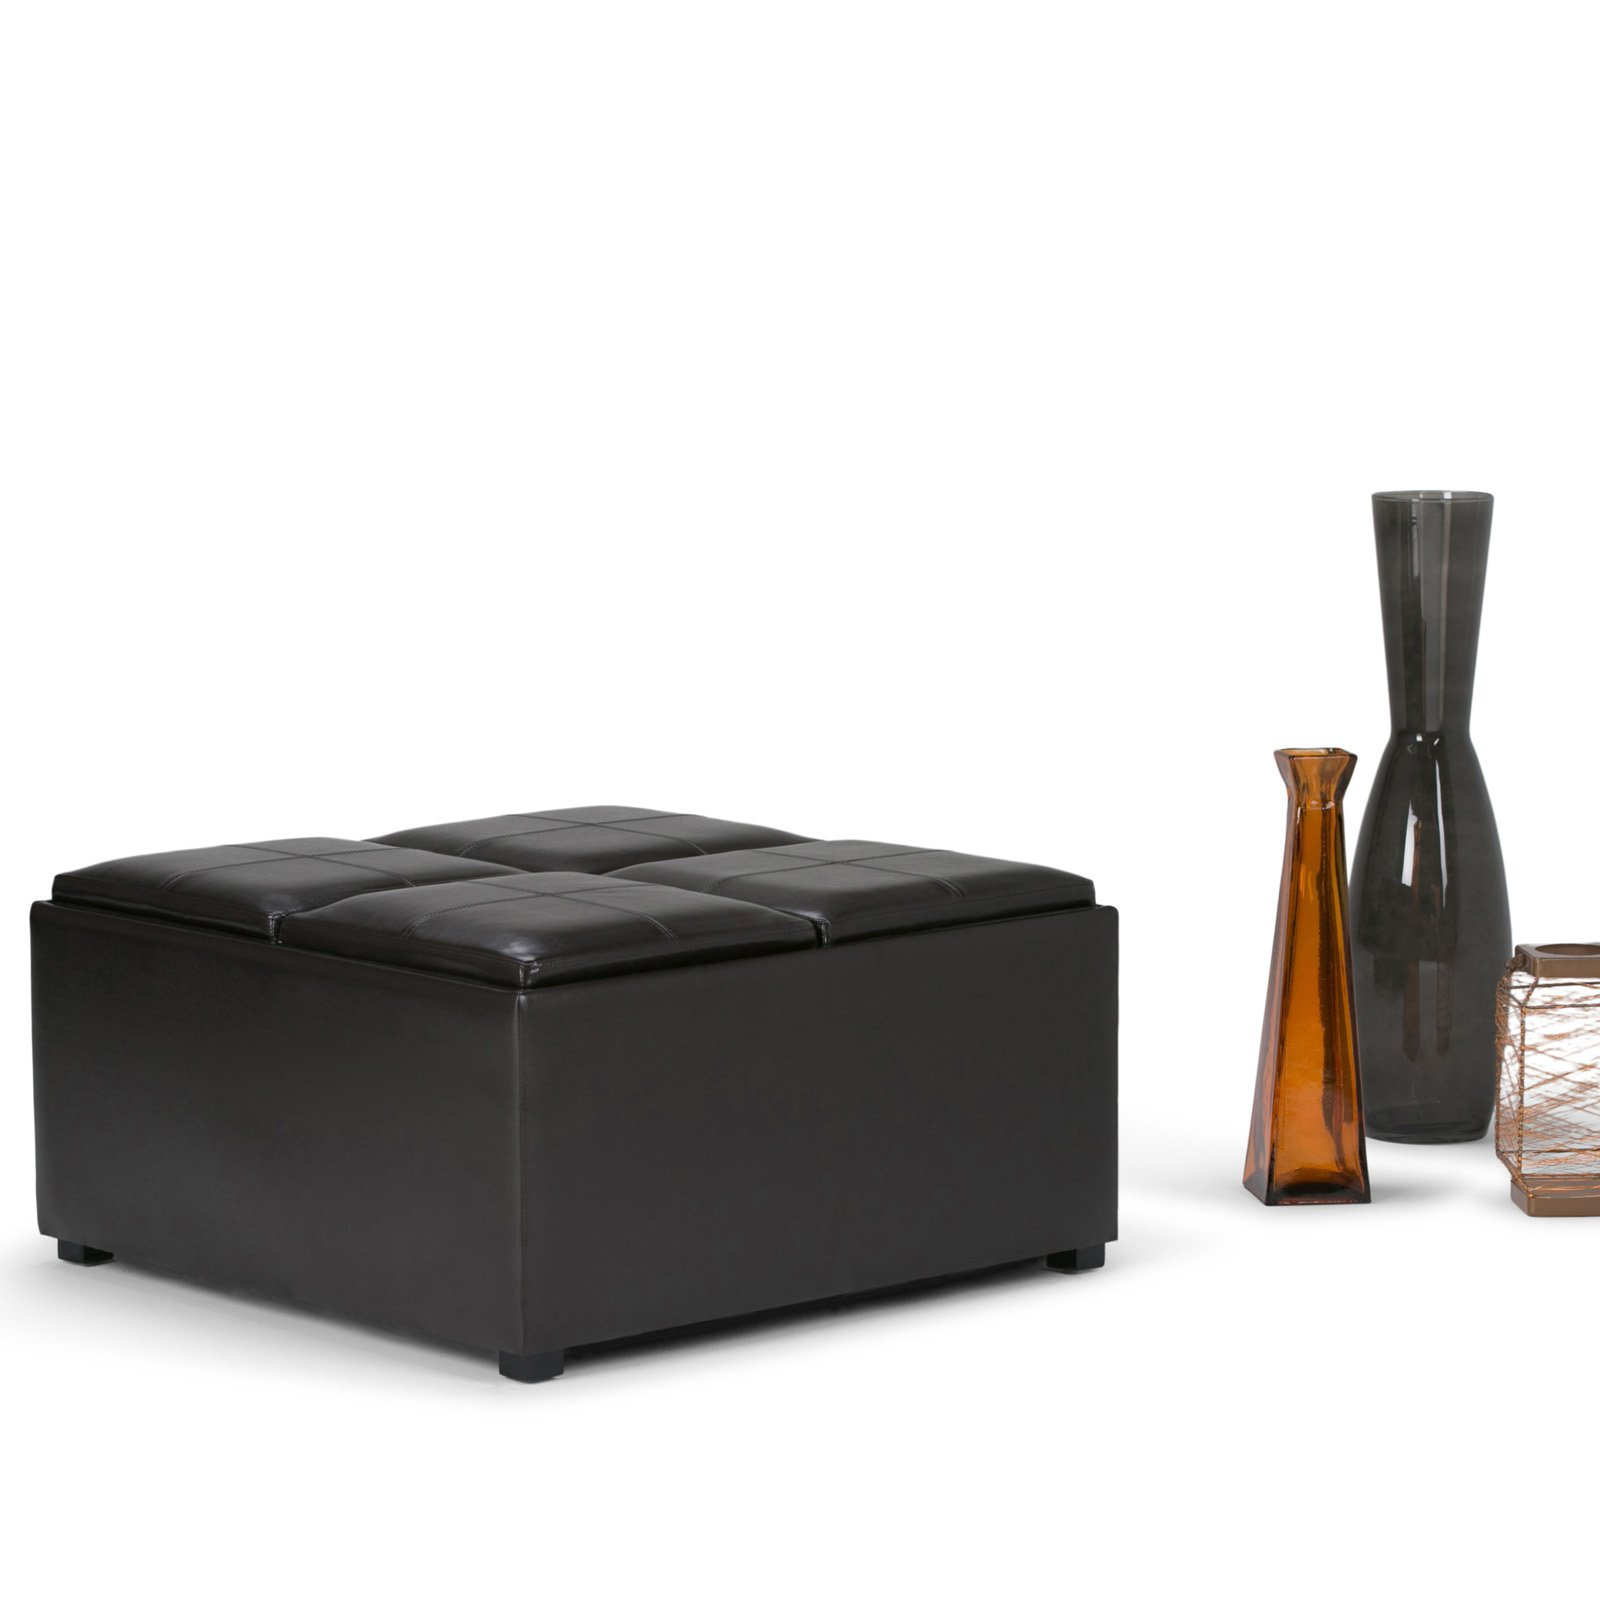 Incredible Simpli Home Avalon Coffee Table Storage Ottoman With 4 Serving Trays Walmart Com Ibusinesslaw Wood Chair Design Ideas Ibusinesslaworg